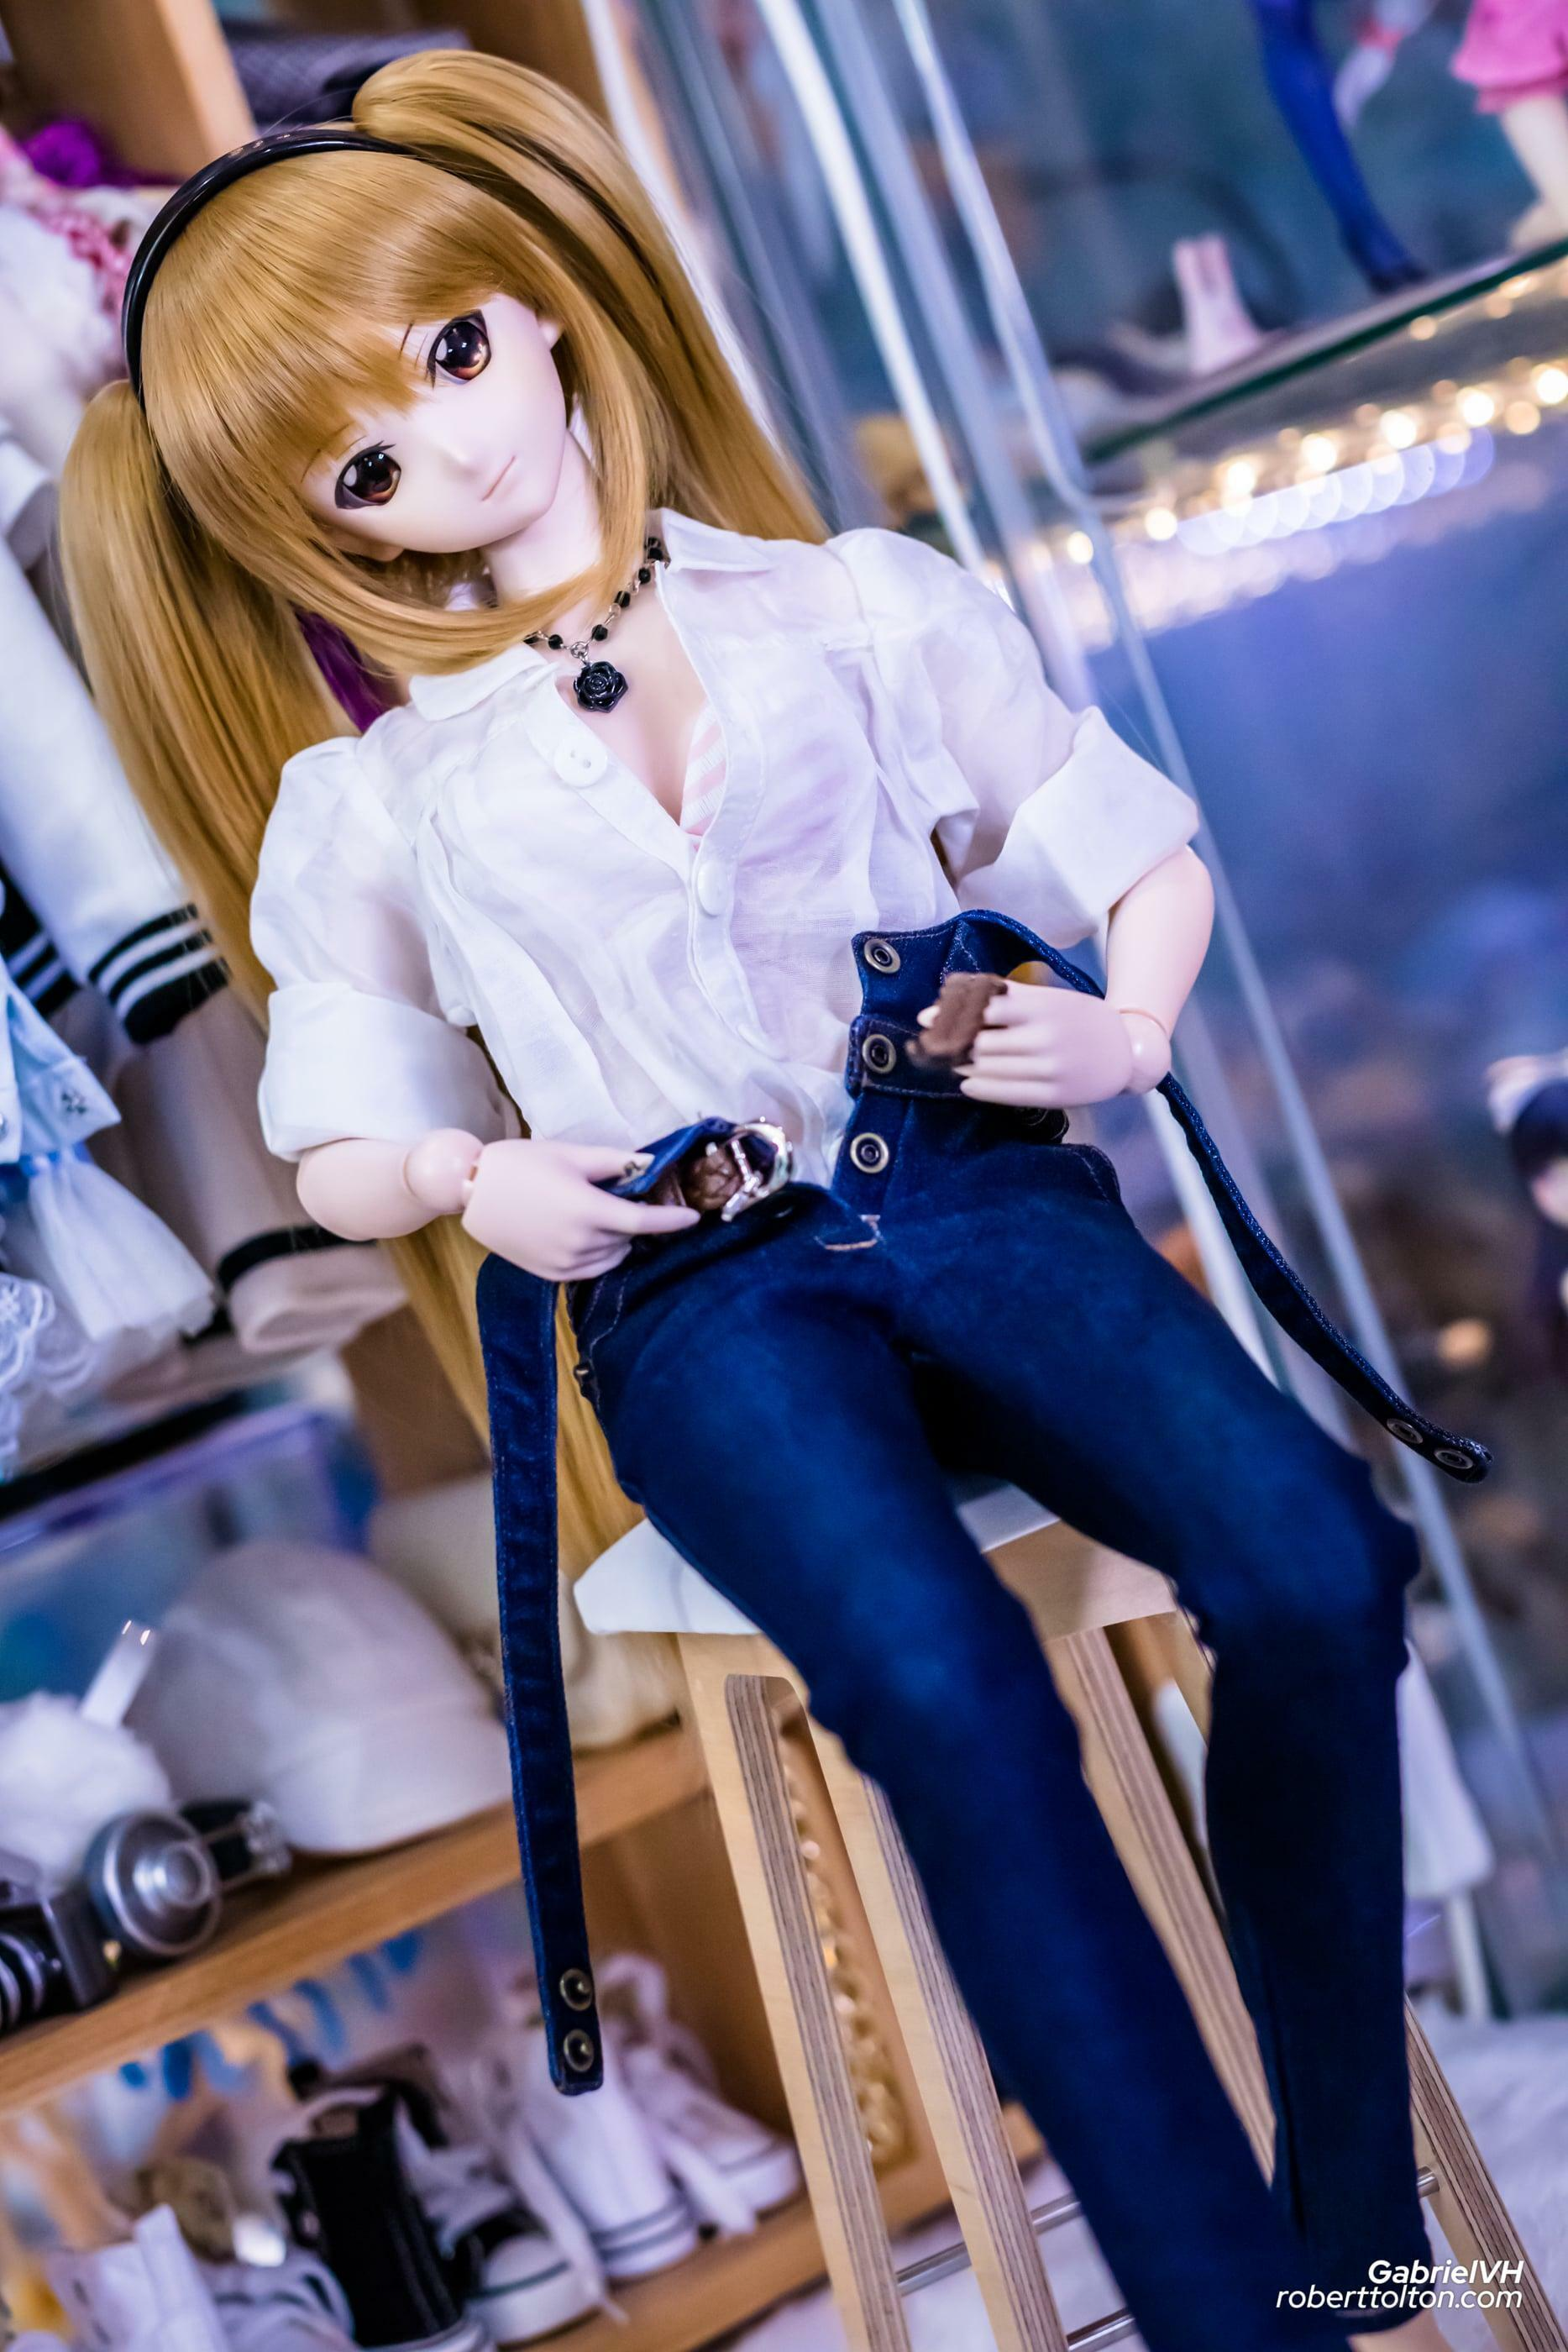 Saber Lily Country Girl 11